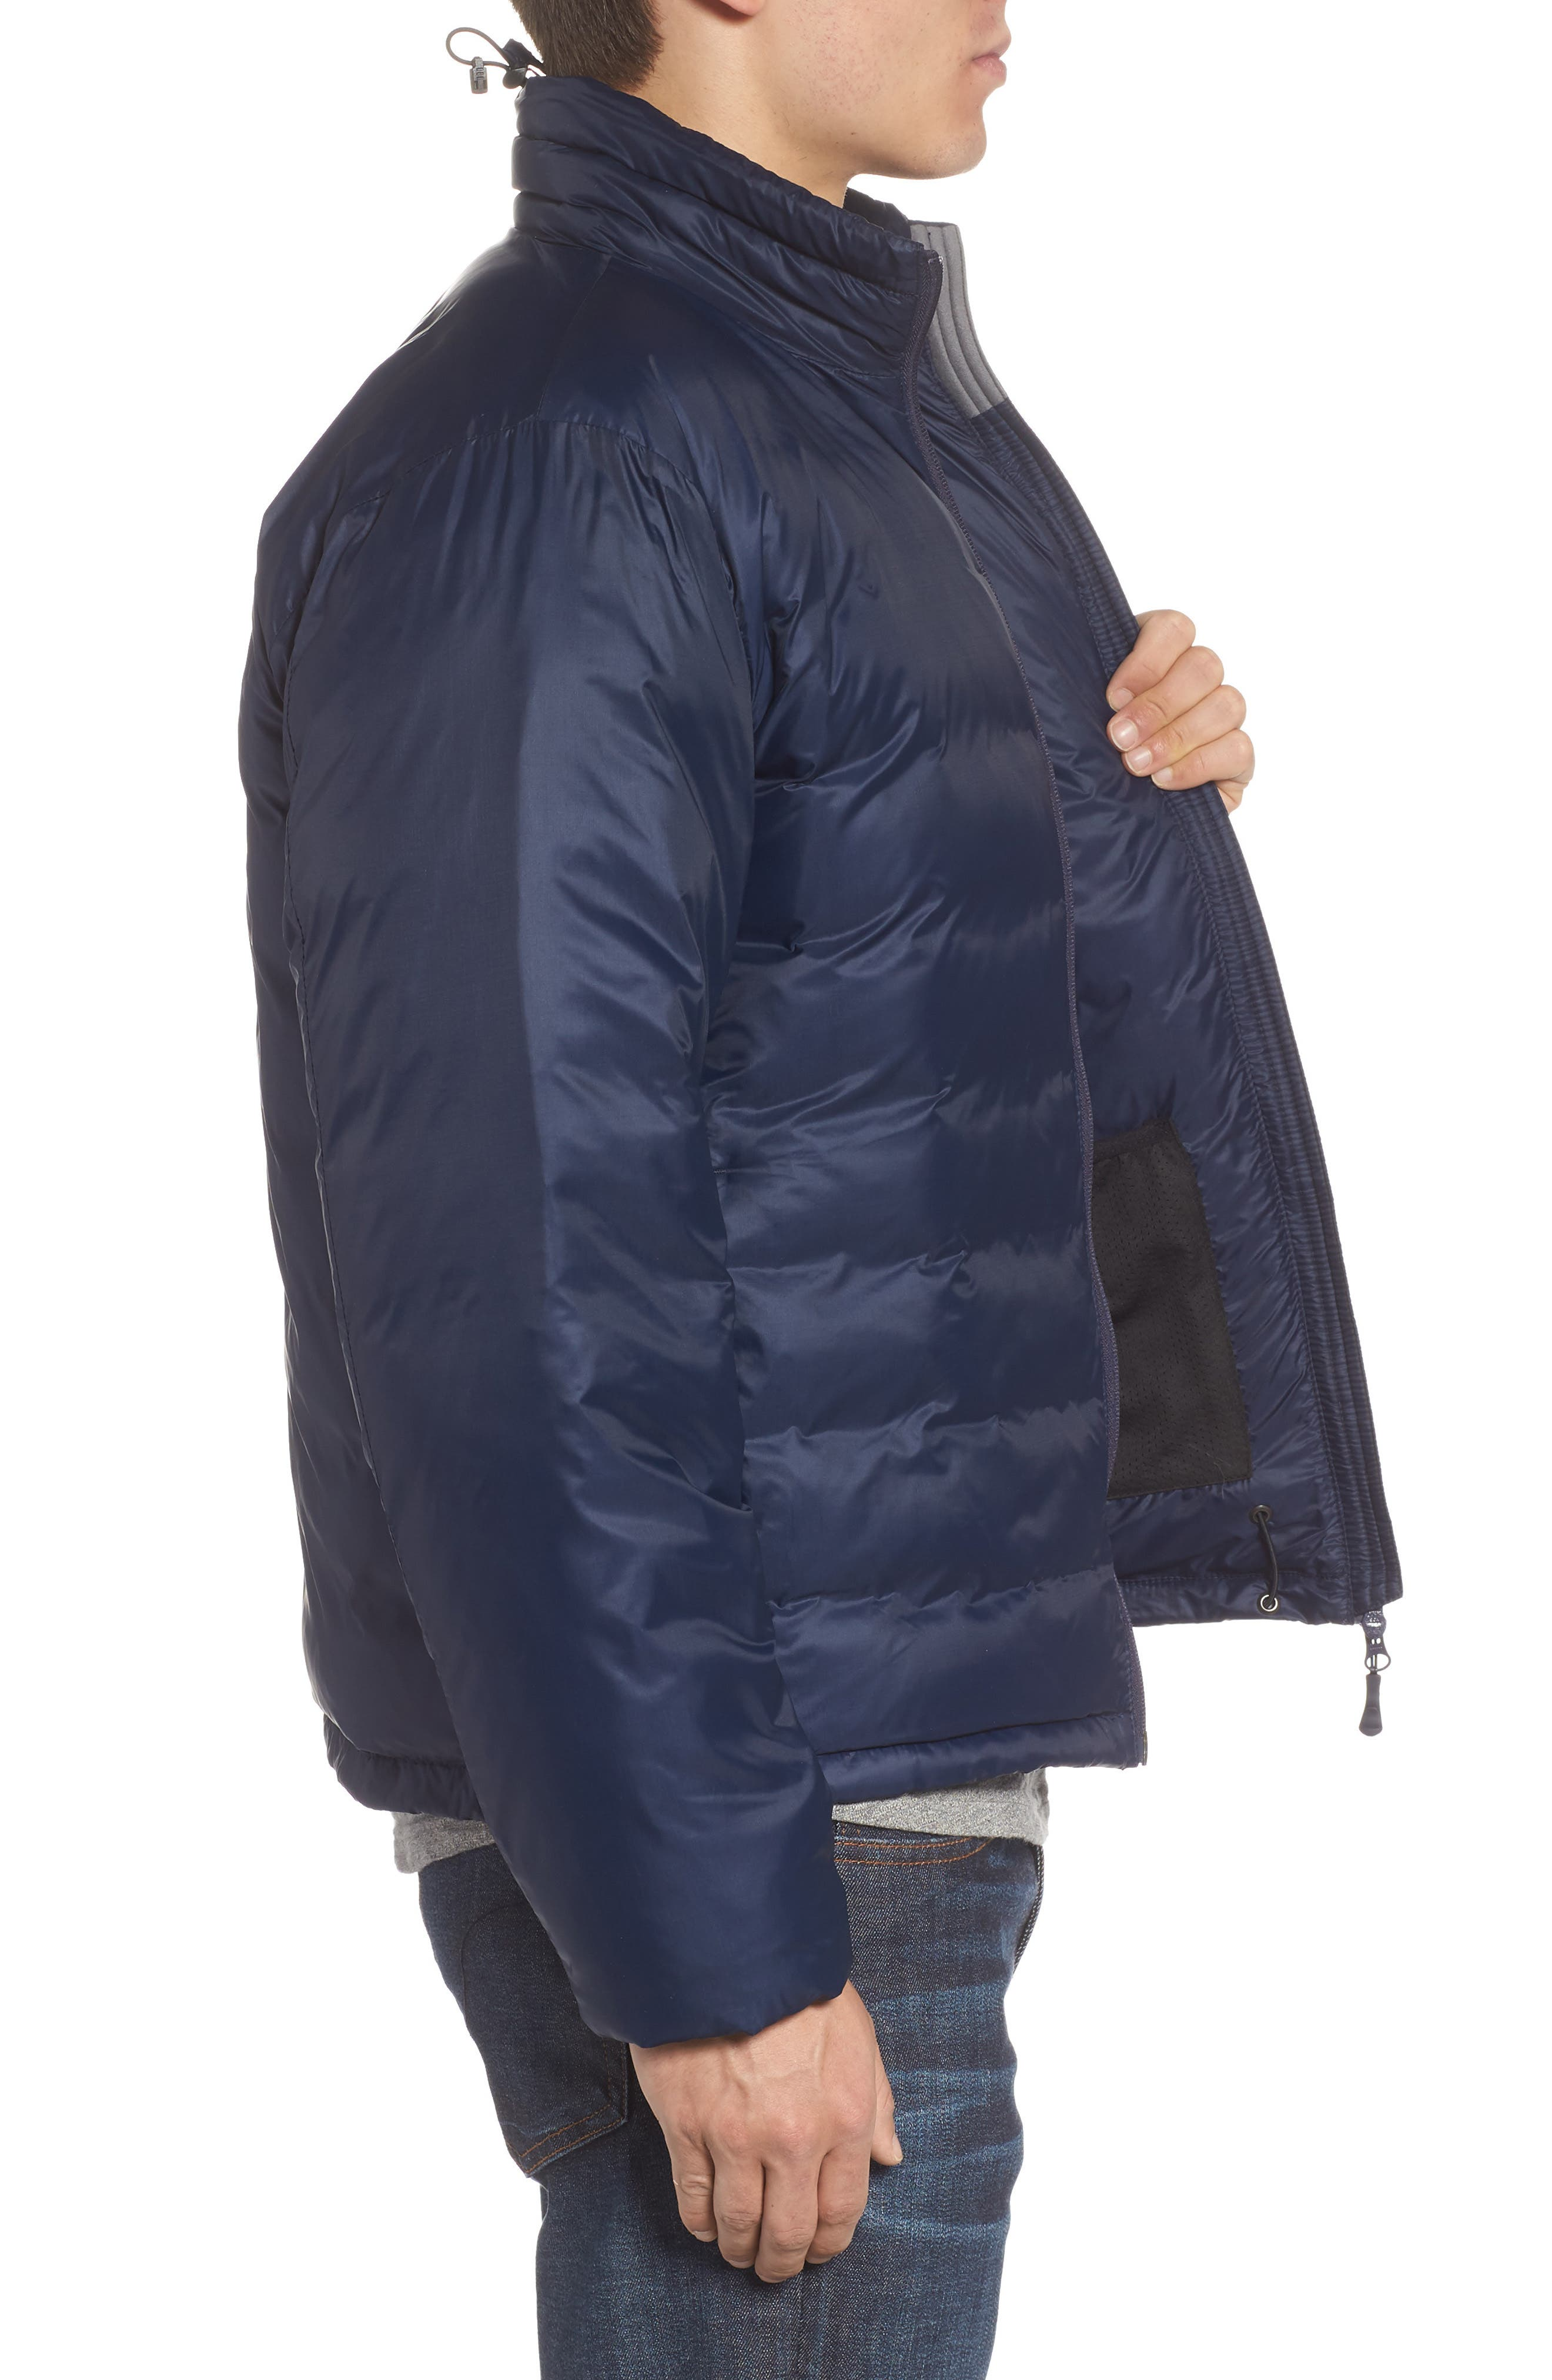 'Lodge' Slim Fit Packable Windproof 750 Down Fill Jacket,                             Alternate thumbnail 3, color,                             ADMIRAL BLUE/ BLACK